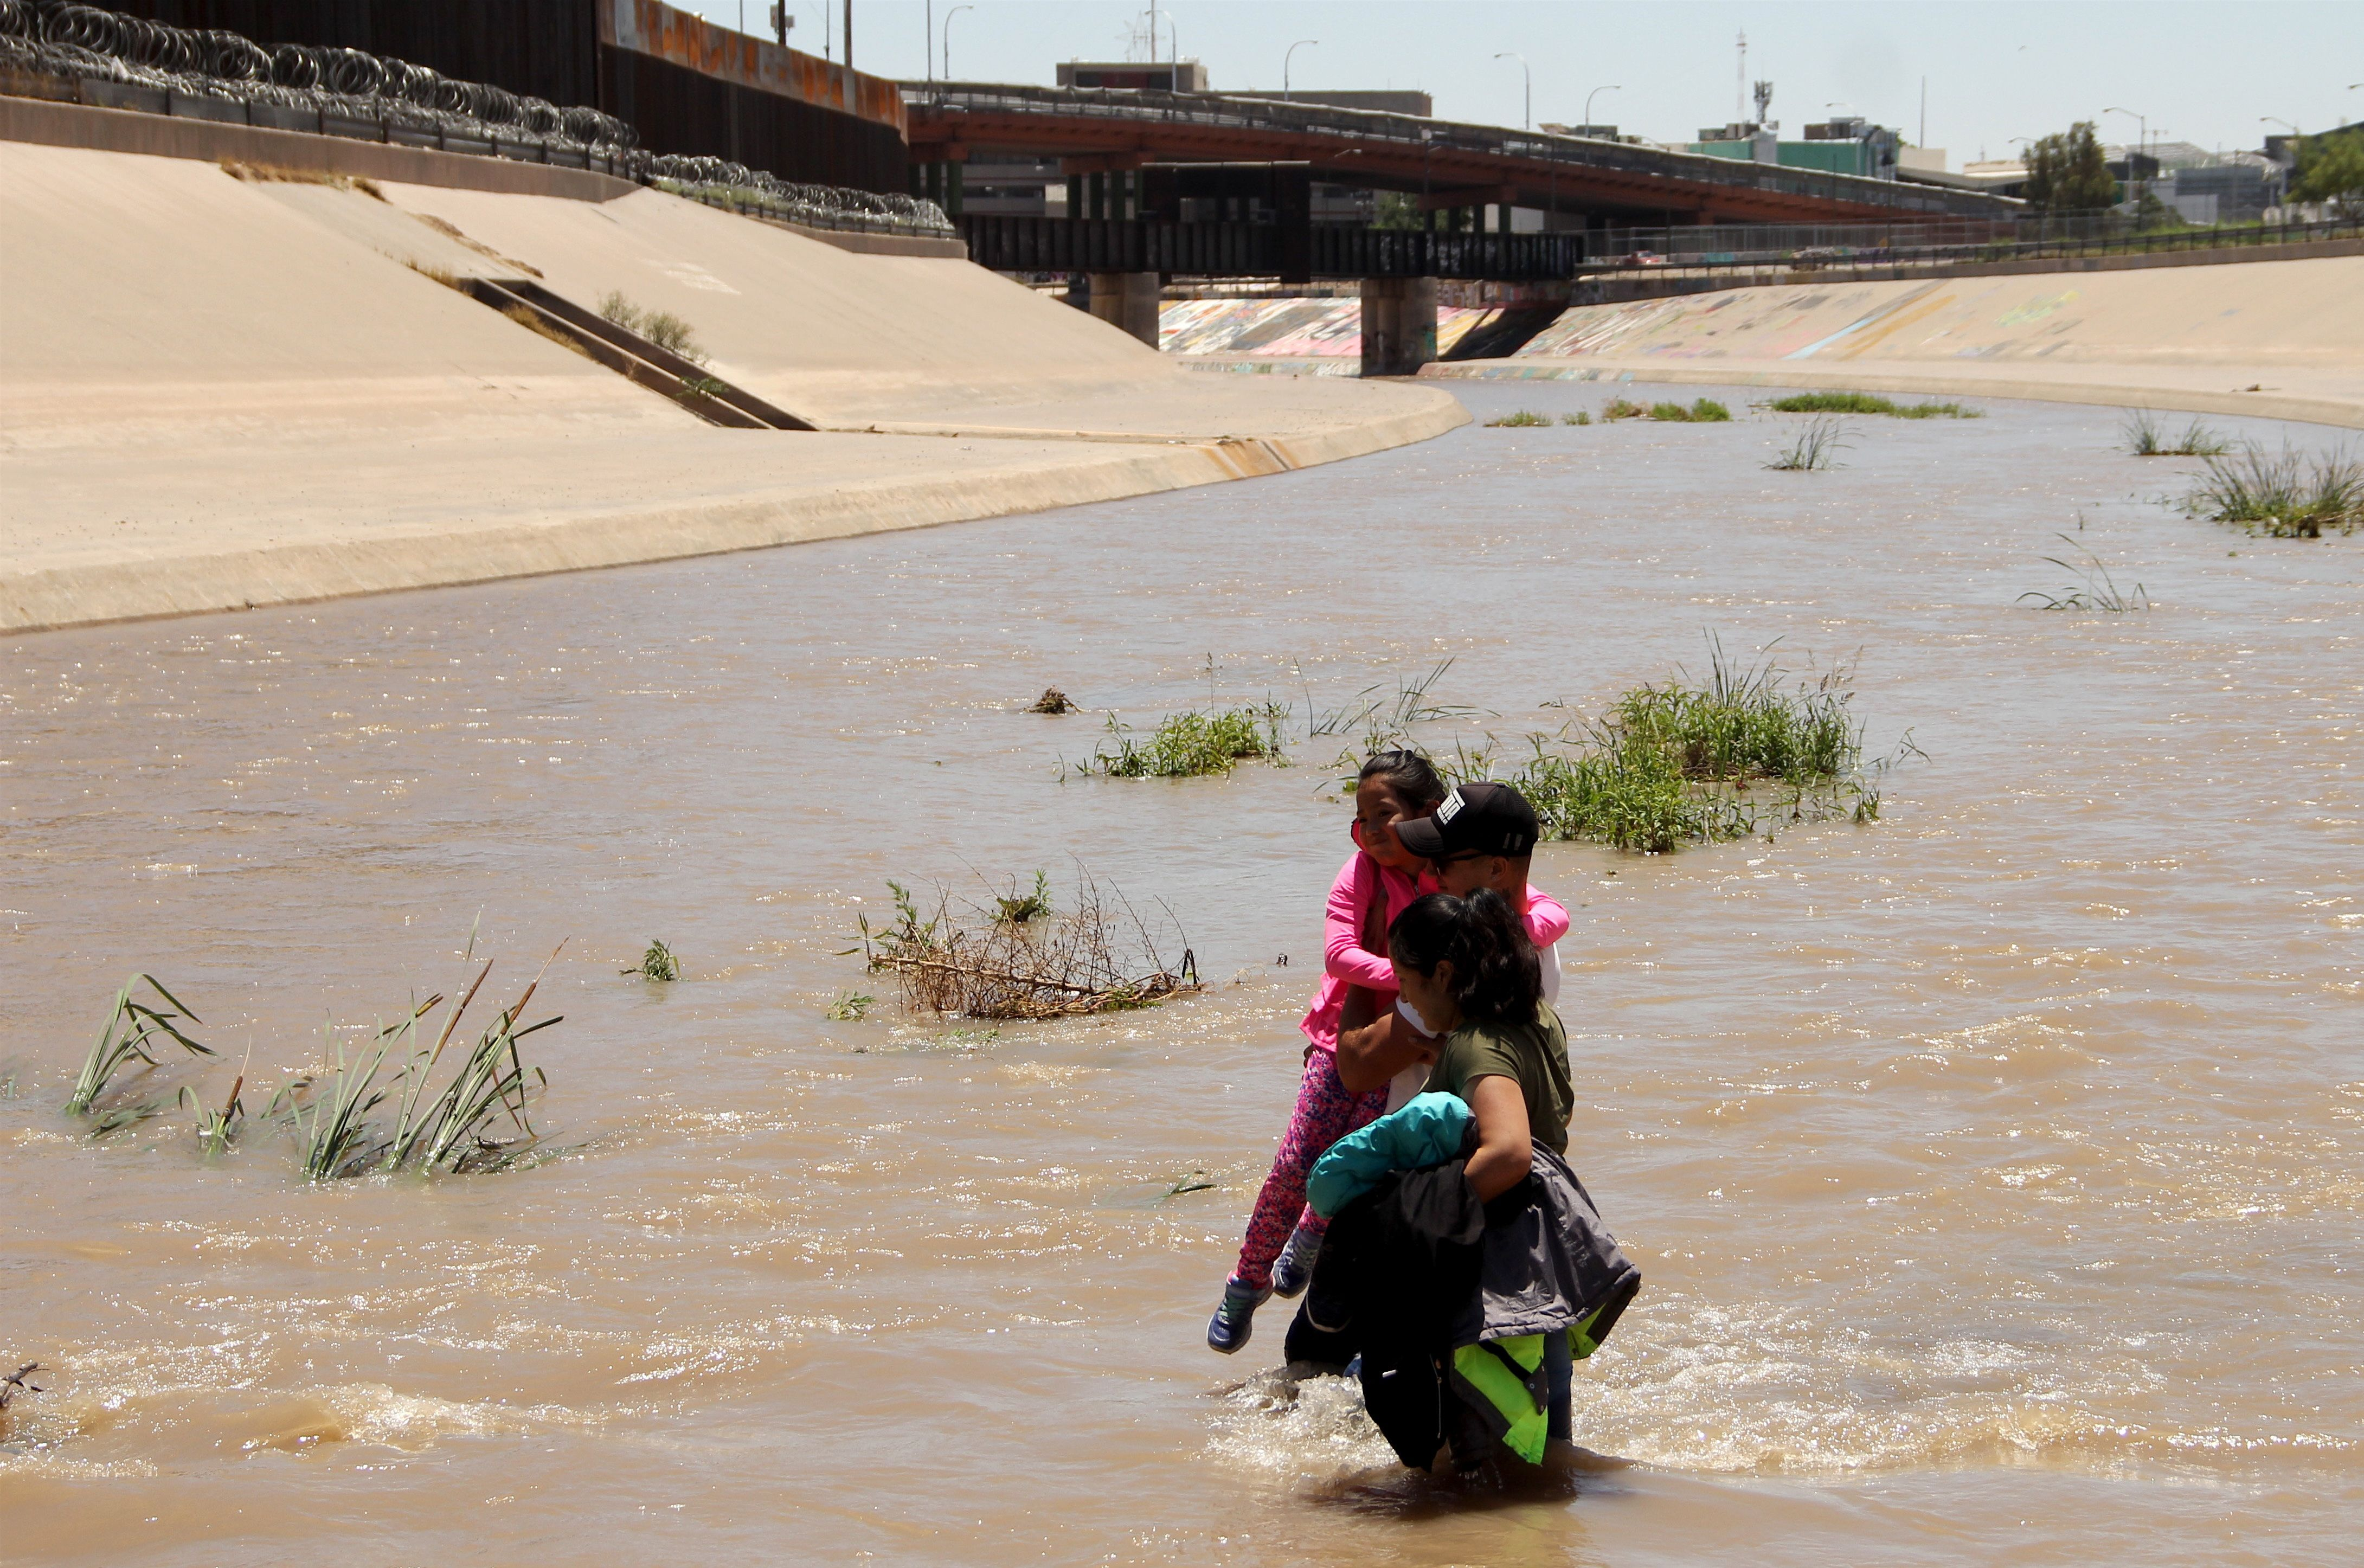 Central American migrants cross the Rio Grande in Ciudad Juarez, on June 12, 2019, before turning themselves into U.S. Border Patrol agents to claim asylum.